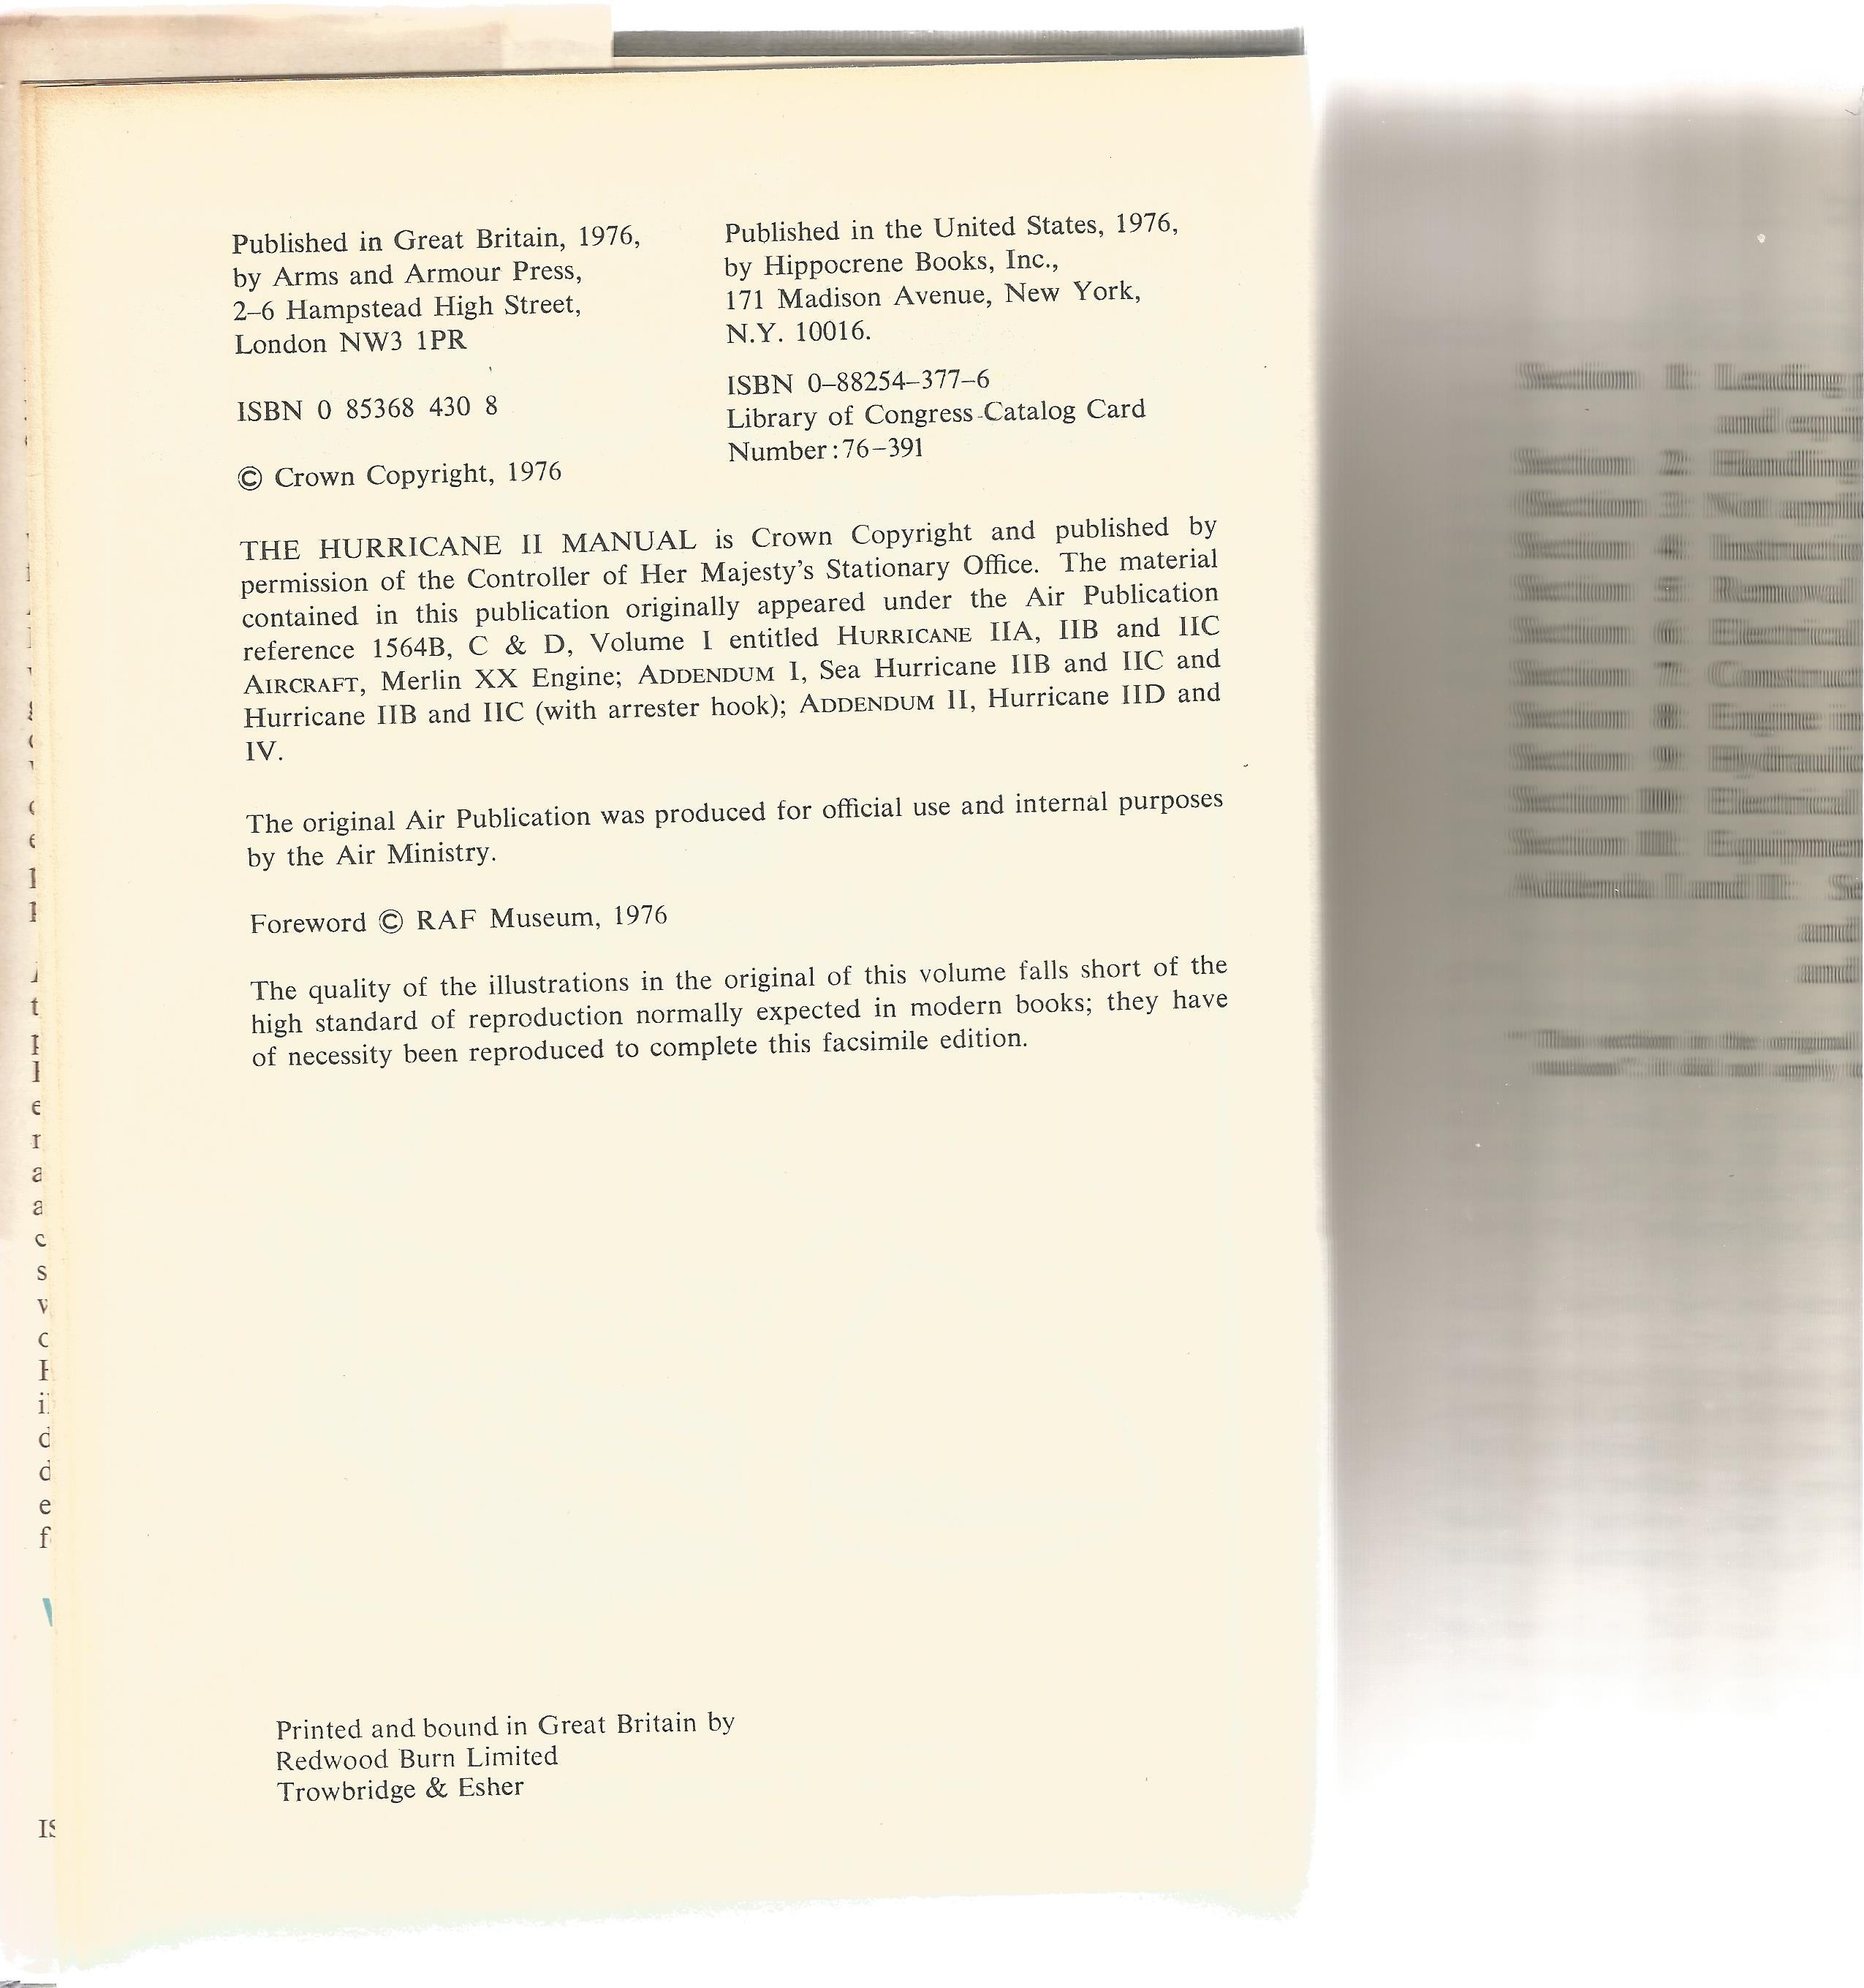 General Editor John Tanner. The Hurricane 2 Manual. The official air publication for the Hurricane - Image 2 of 3